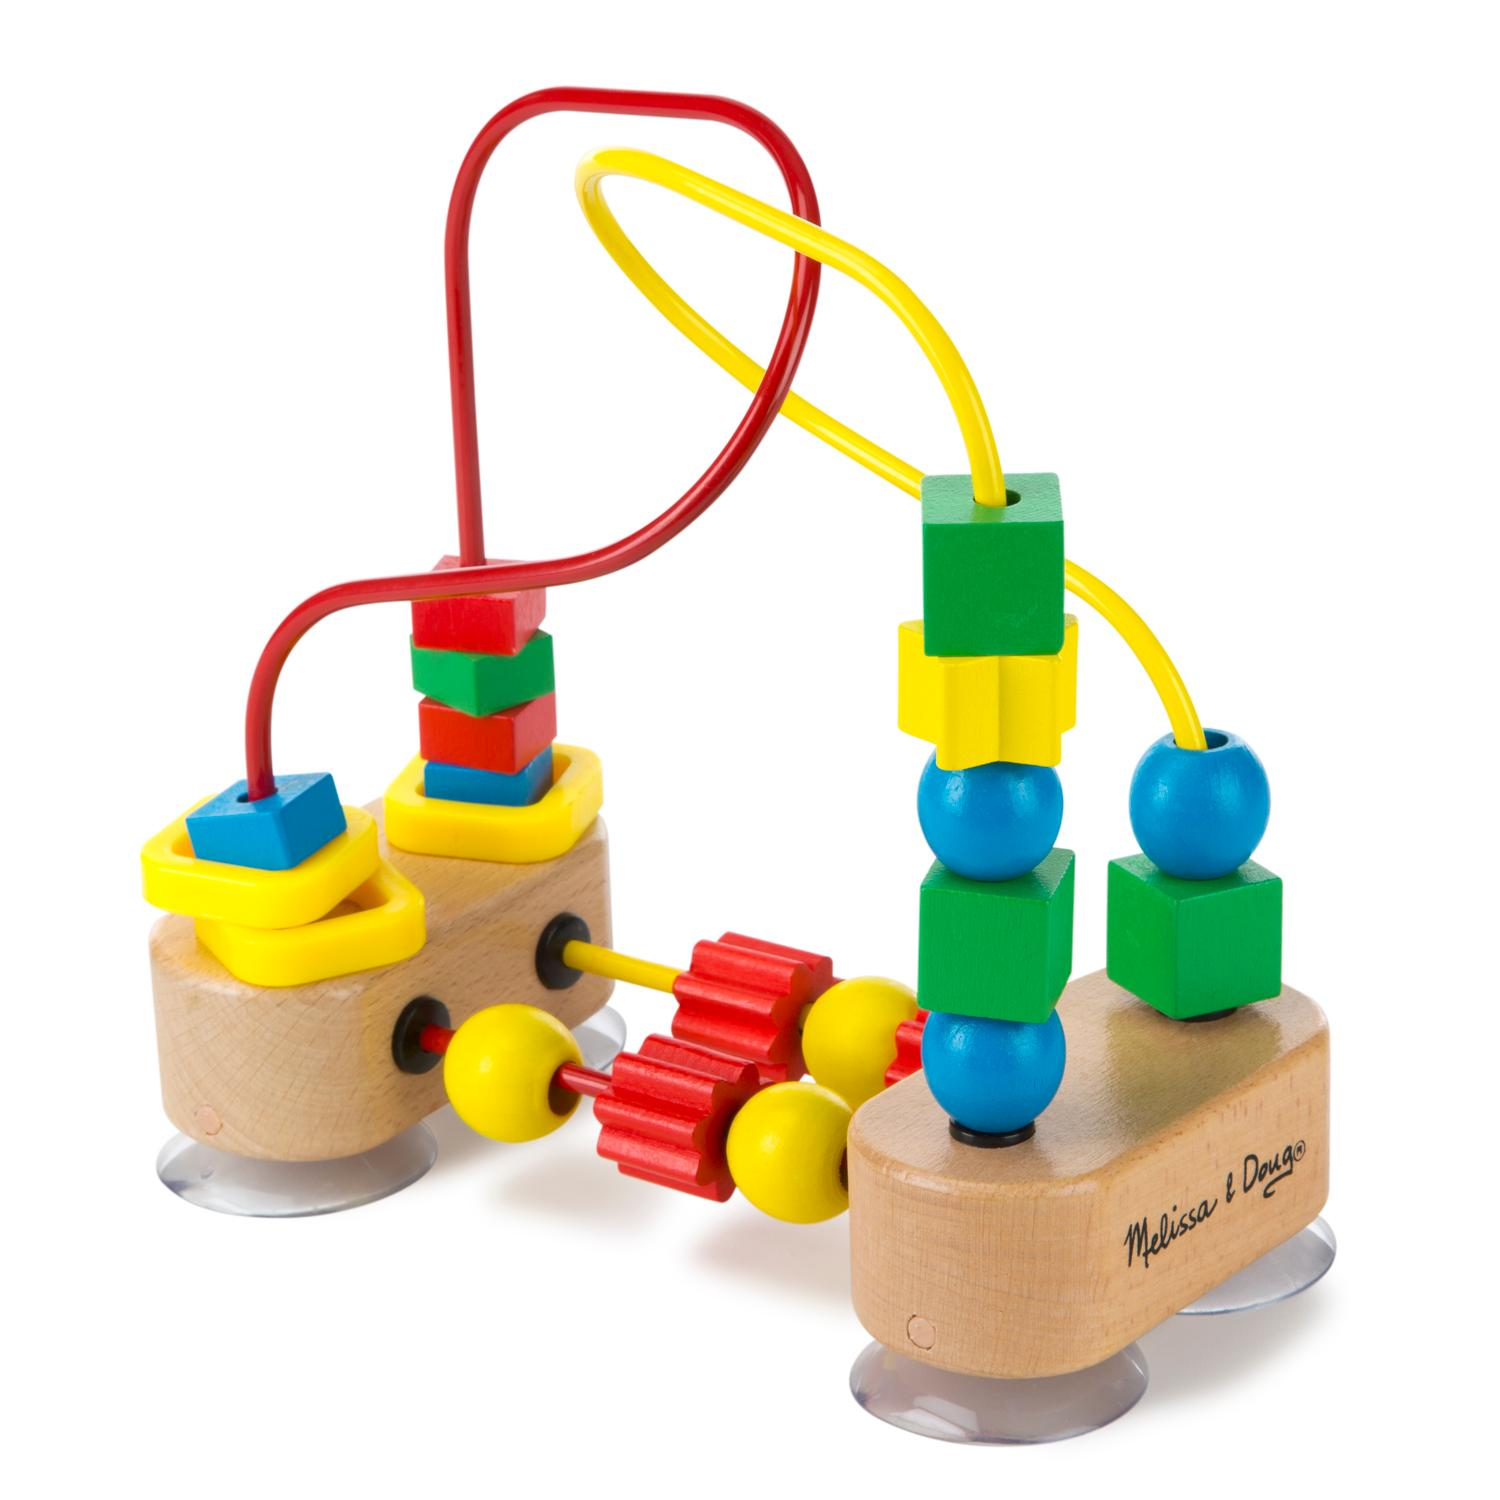 Melissa & Doug First Bead Maze Wooden Educational Toy Amazon